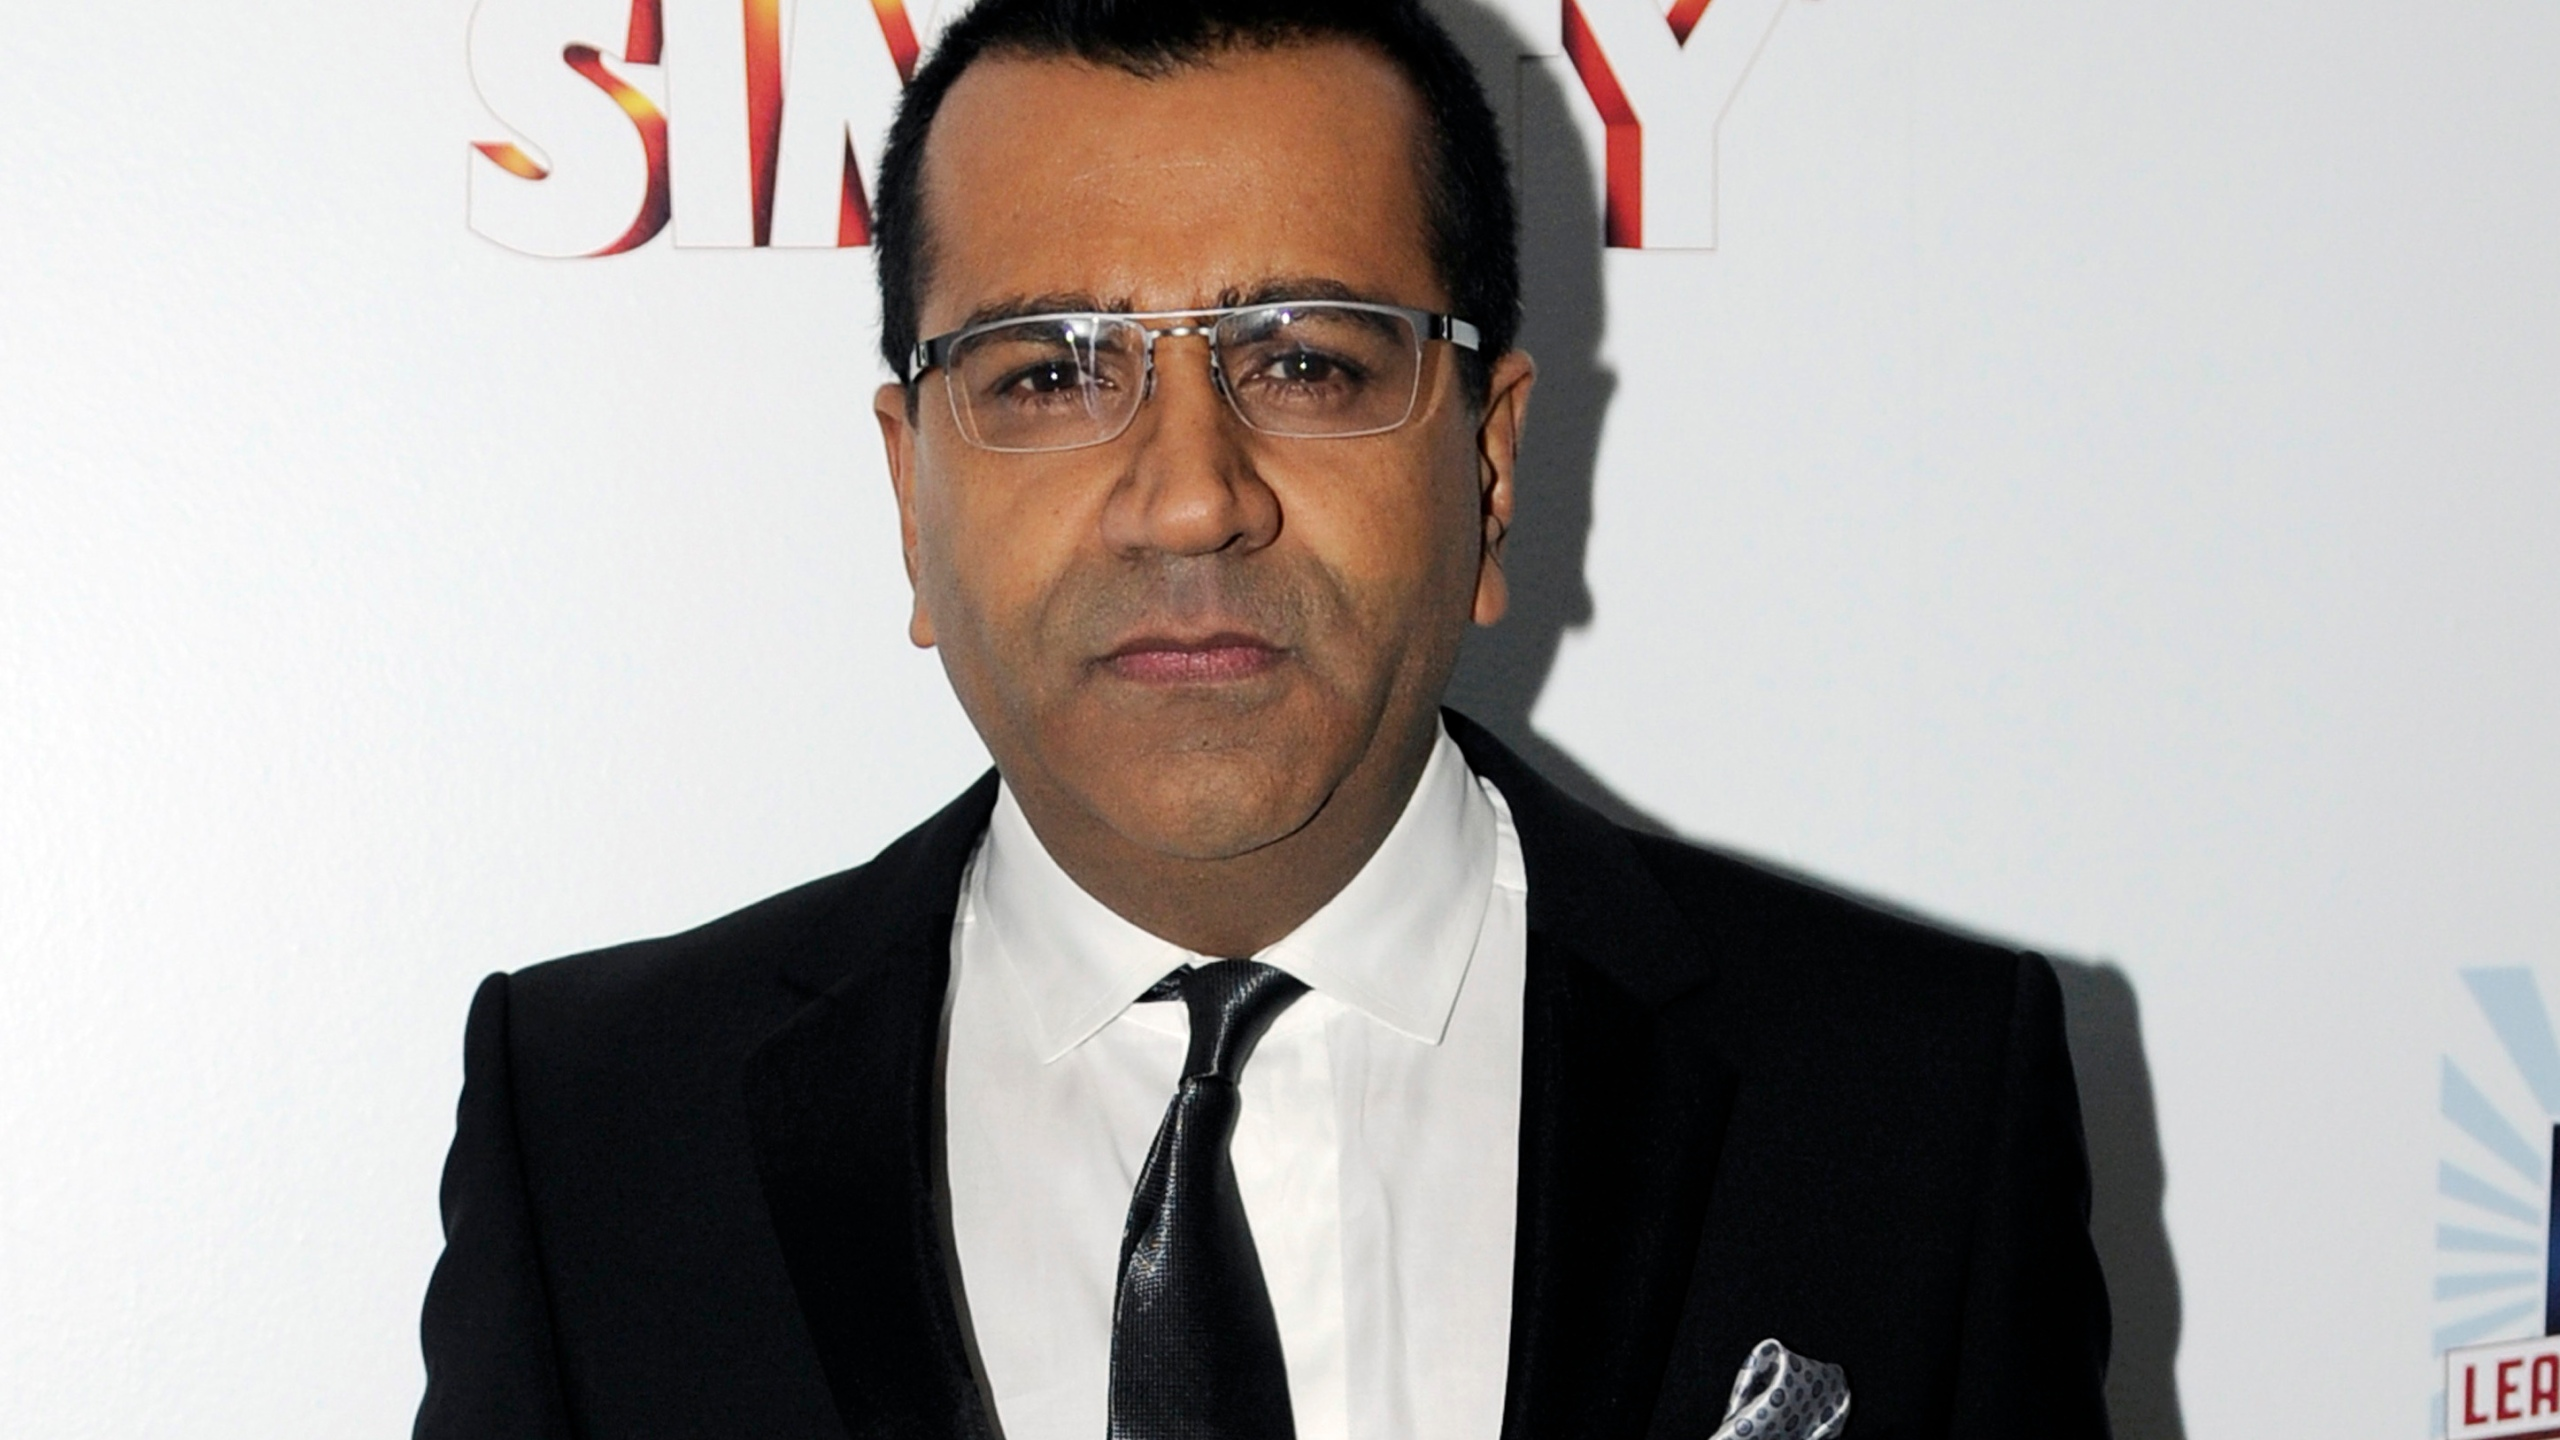 This Jan. 22, 2013 file photo shows Martin Bashir at the EA SimCity Learn. Build. Create. Inauguration after-party, in Washington. (Nick Wass/Invision/Associated Press)